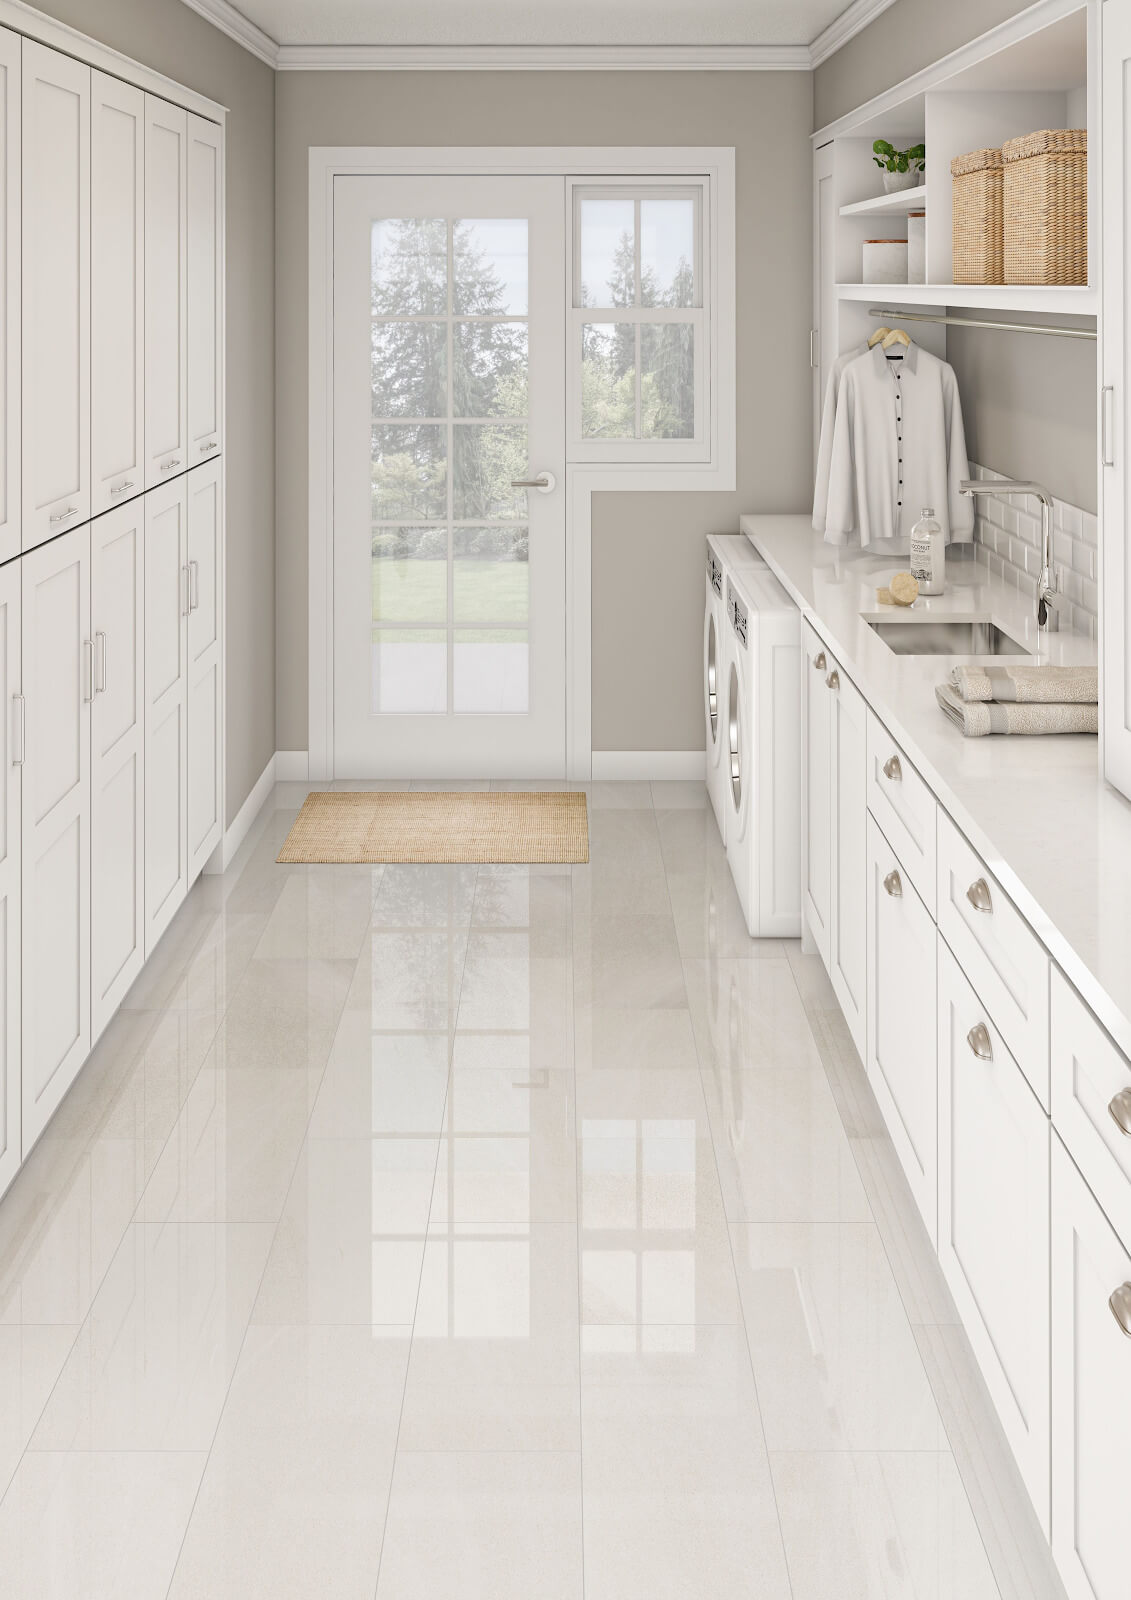 Laundry room with white tile flooring